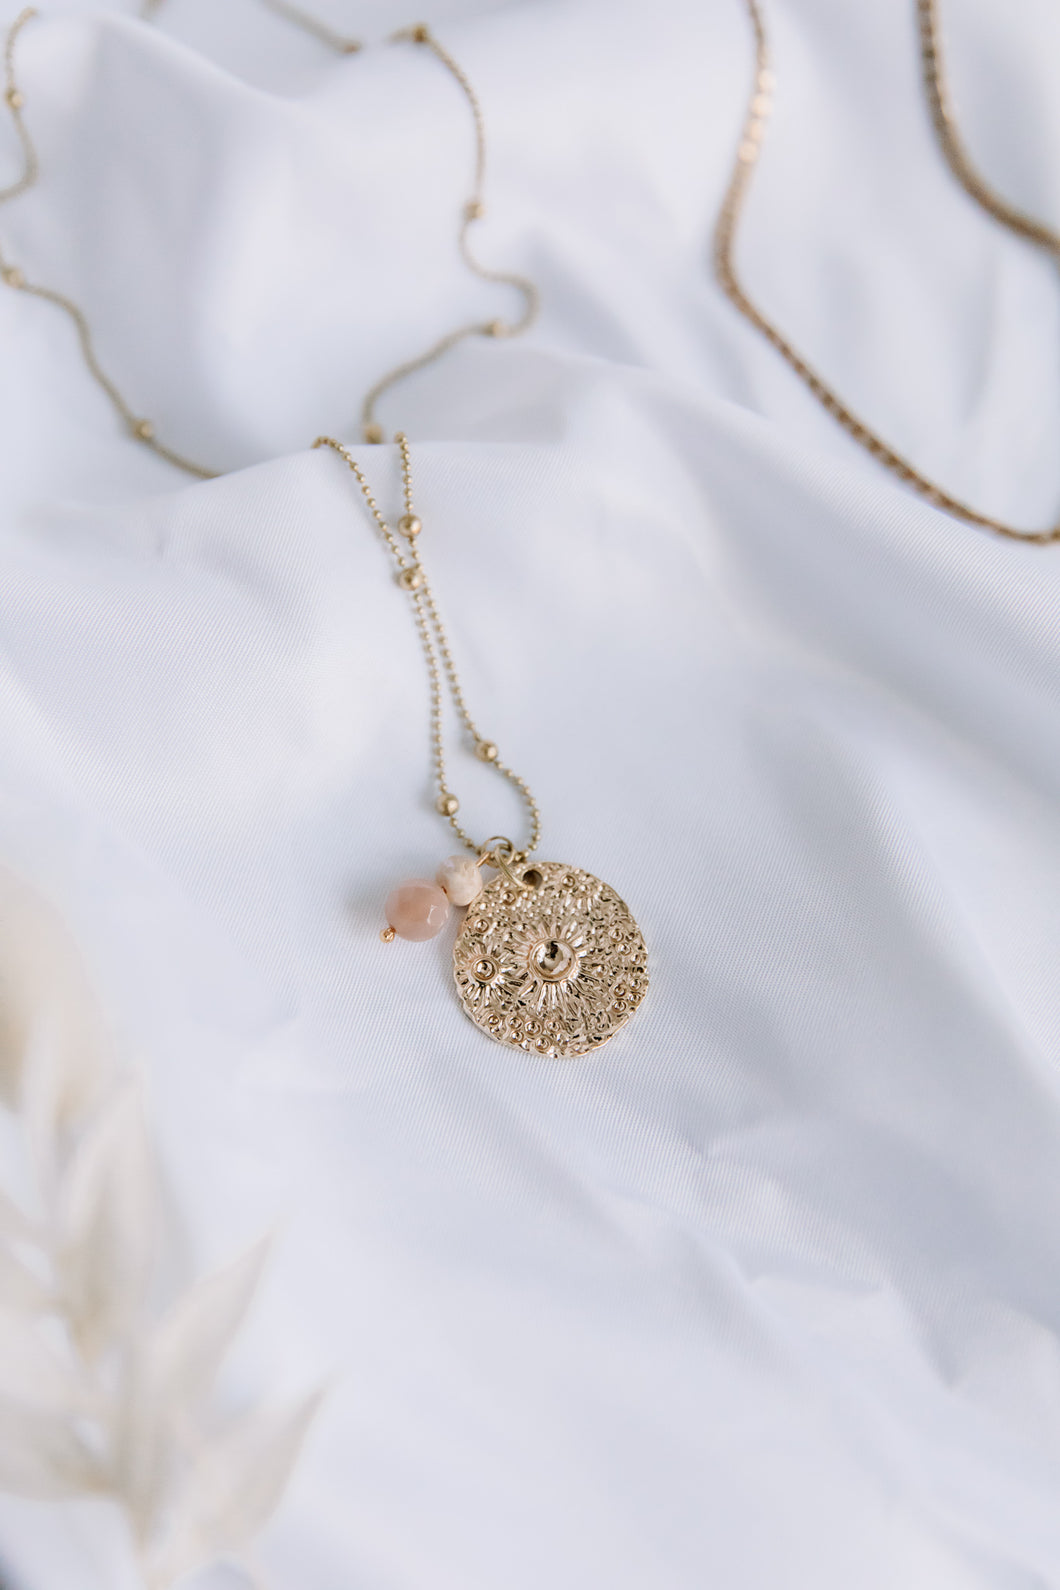 The soleil brûlant necklace //